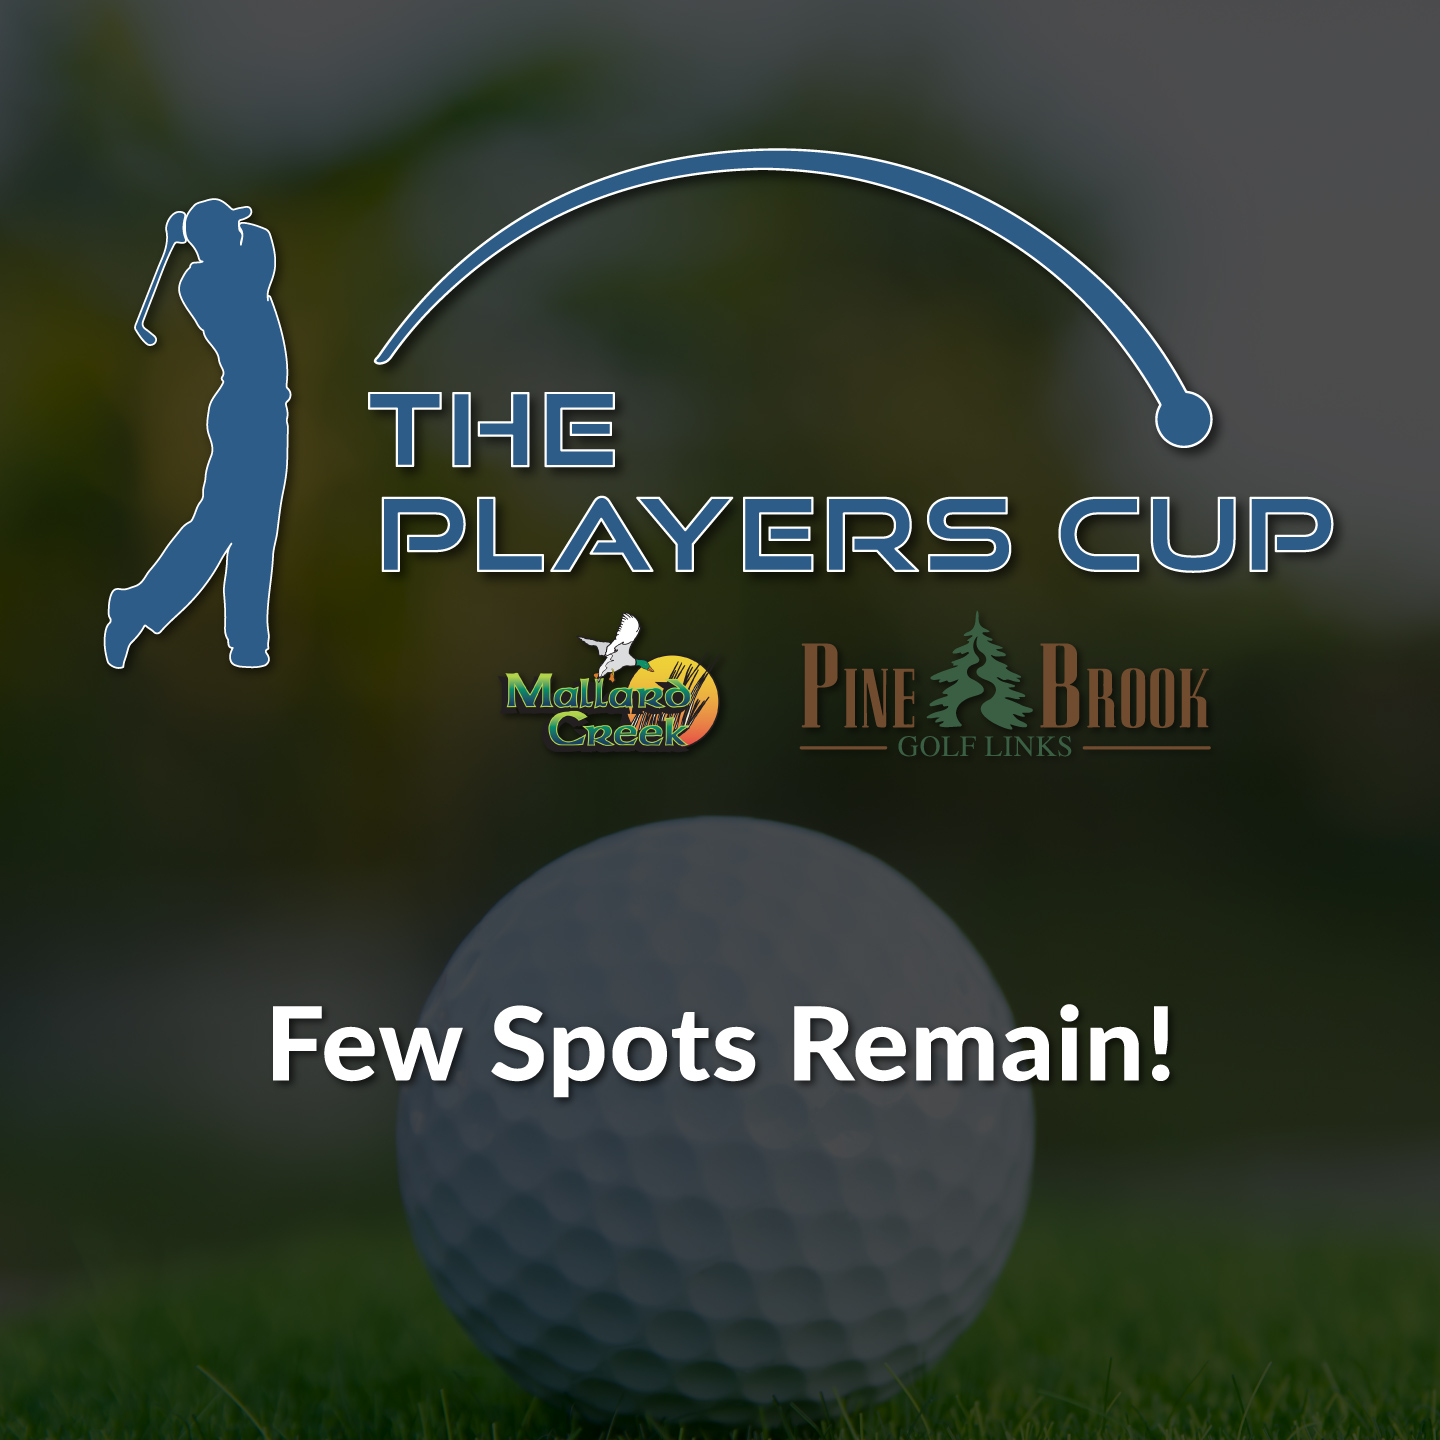 The 2021 Players Cup Golf League